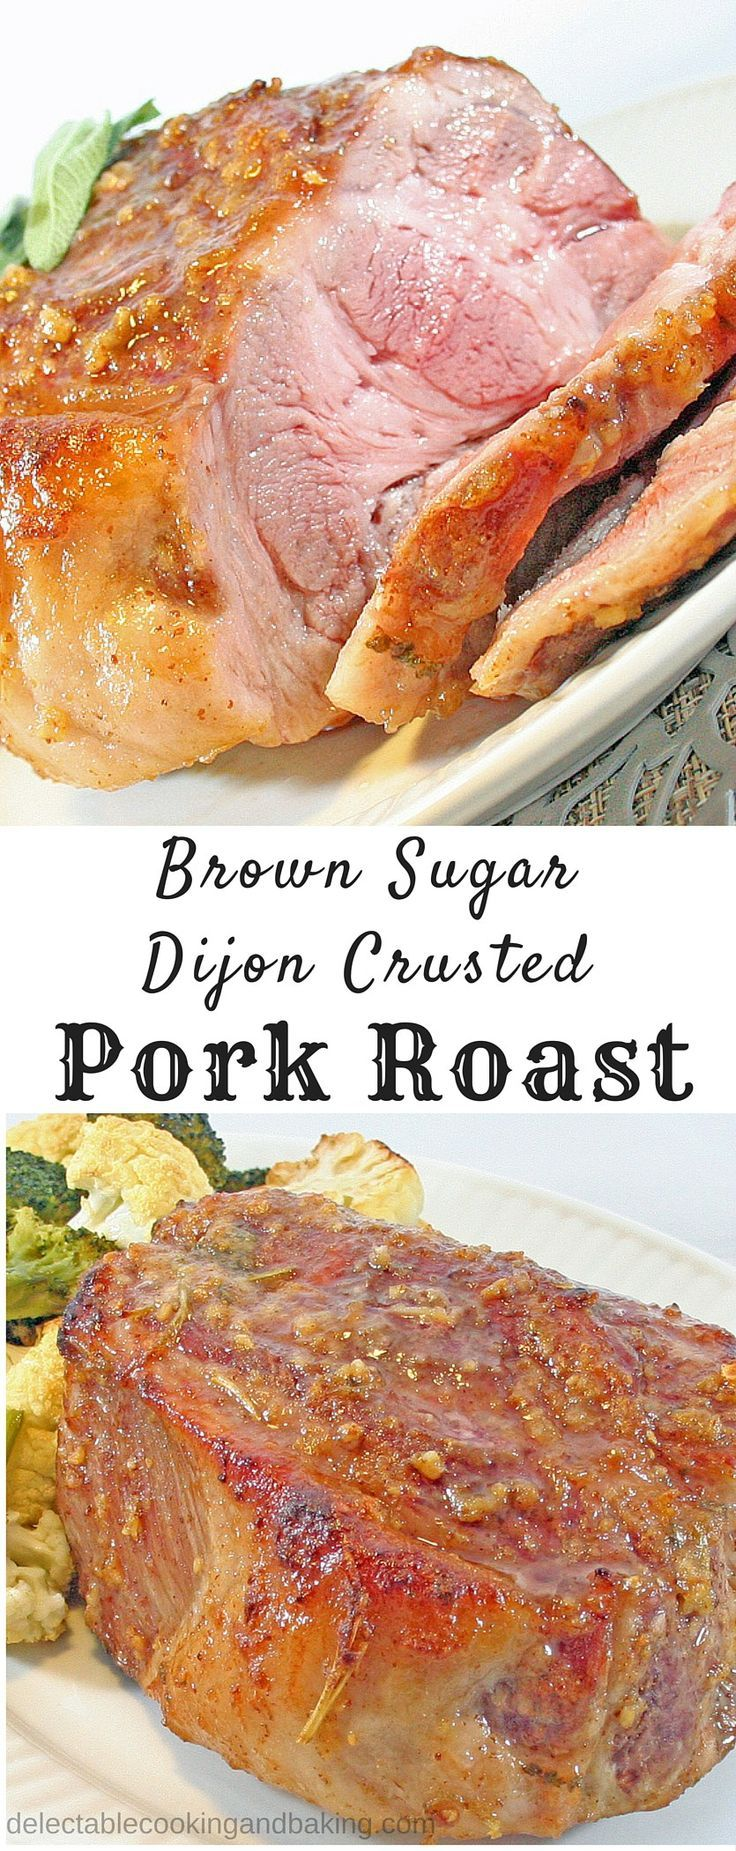 I love easy dinners, and this Brown Sugar Dijon Crusted Pork Roast definitely qualifies as easy…it's not only easy, but the resting period after roasting it allows for plenty of time to finish off your veggies or other side dishes. Plus, it's a crowd-plea